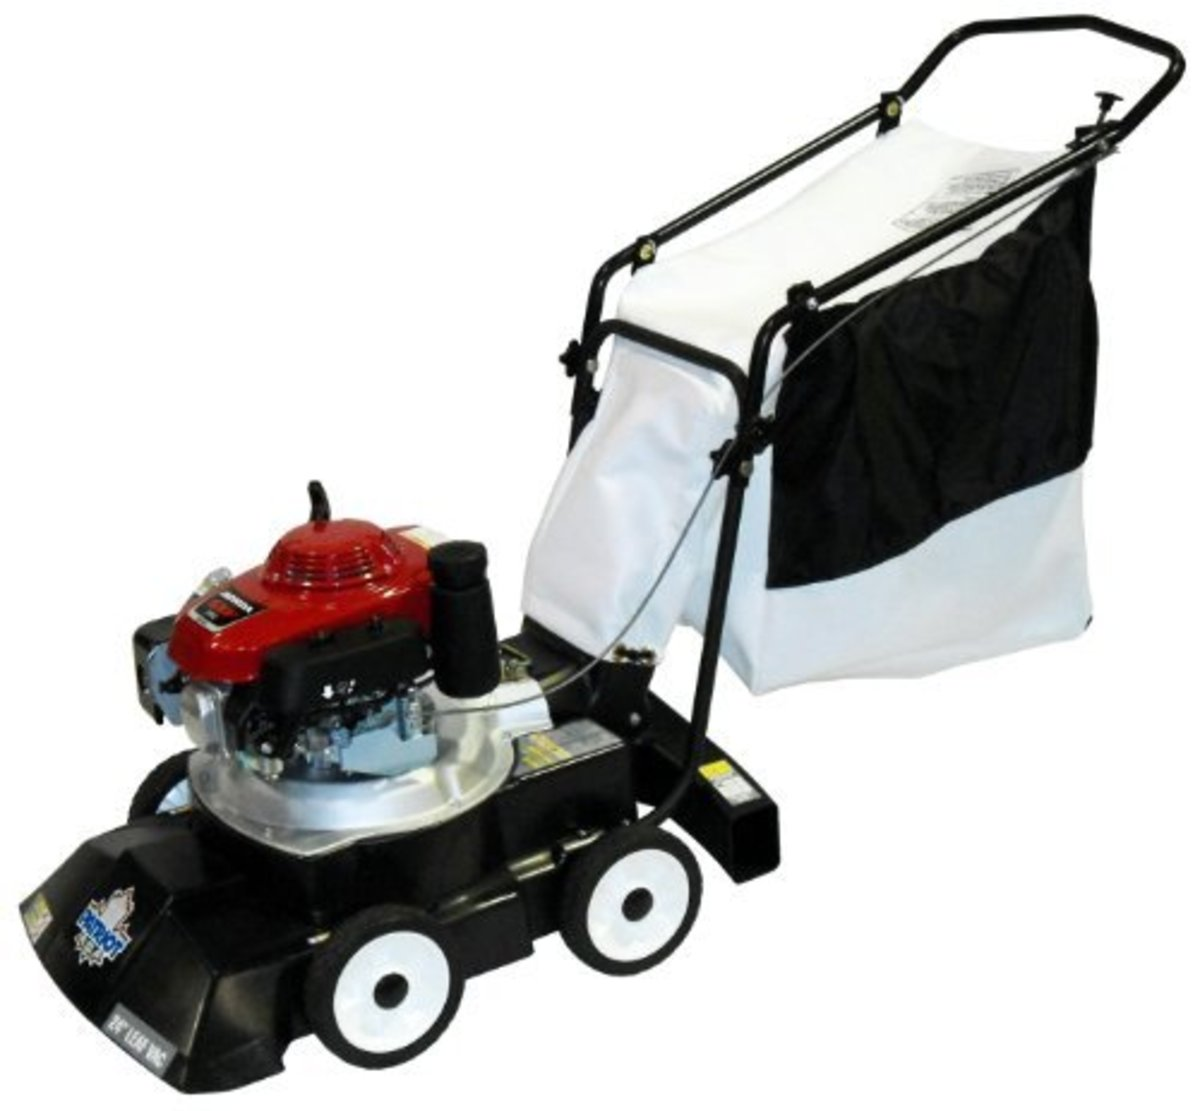 3-In-1 Leaf Vacuum/Chipper/Blower: Gas powered, not self-propelled.